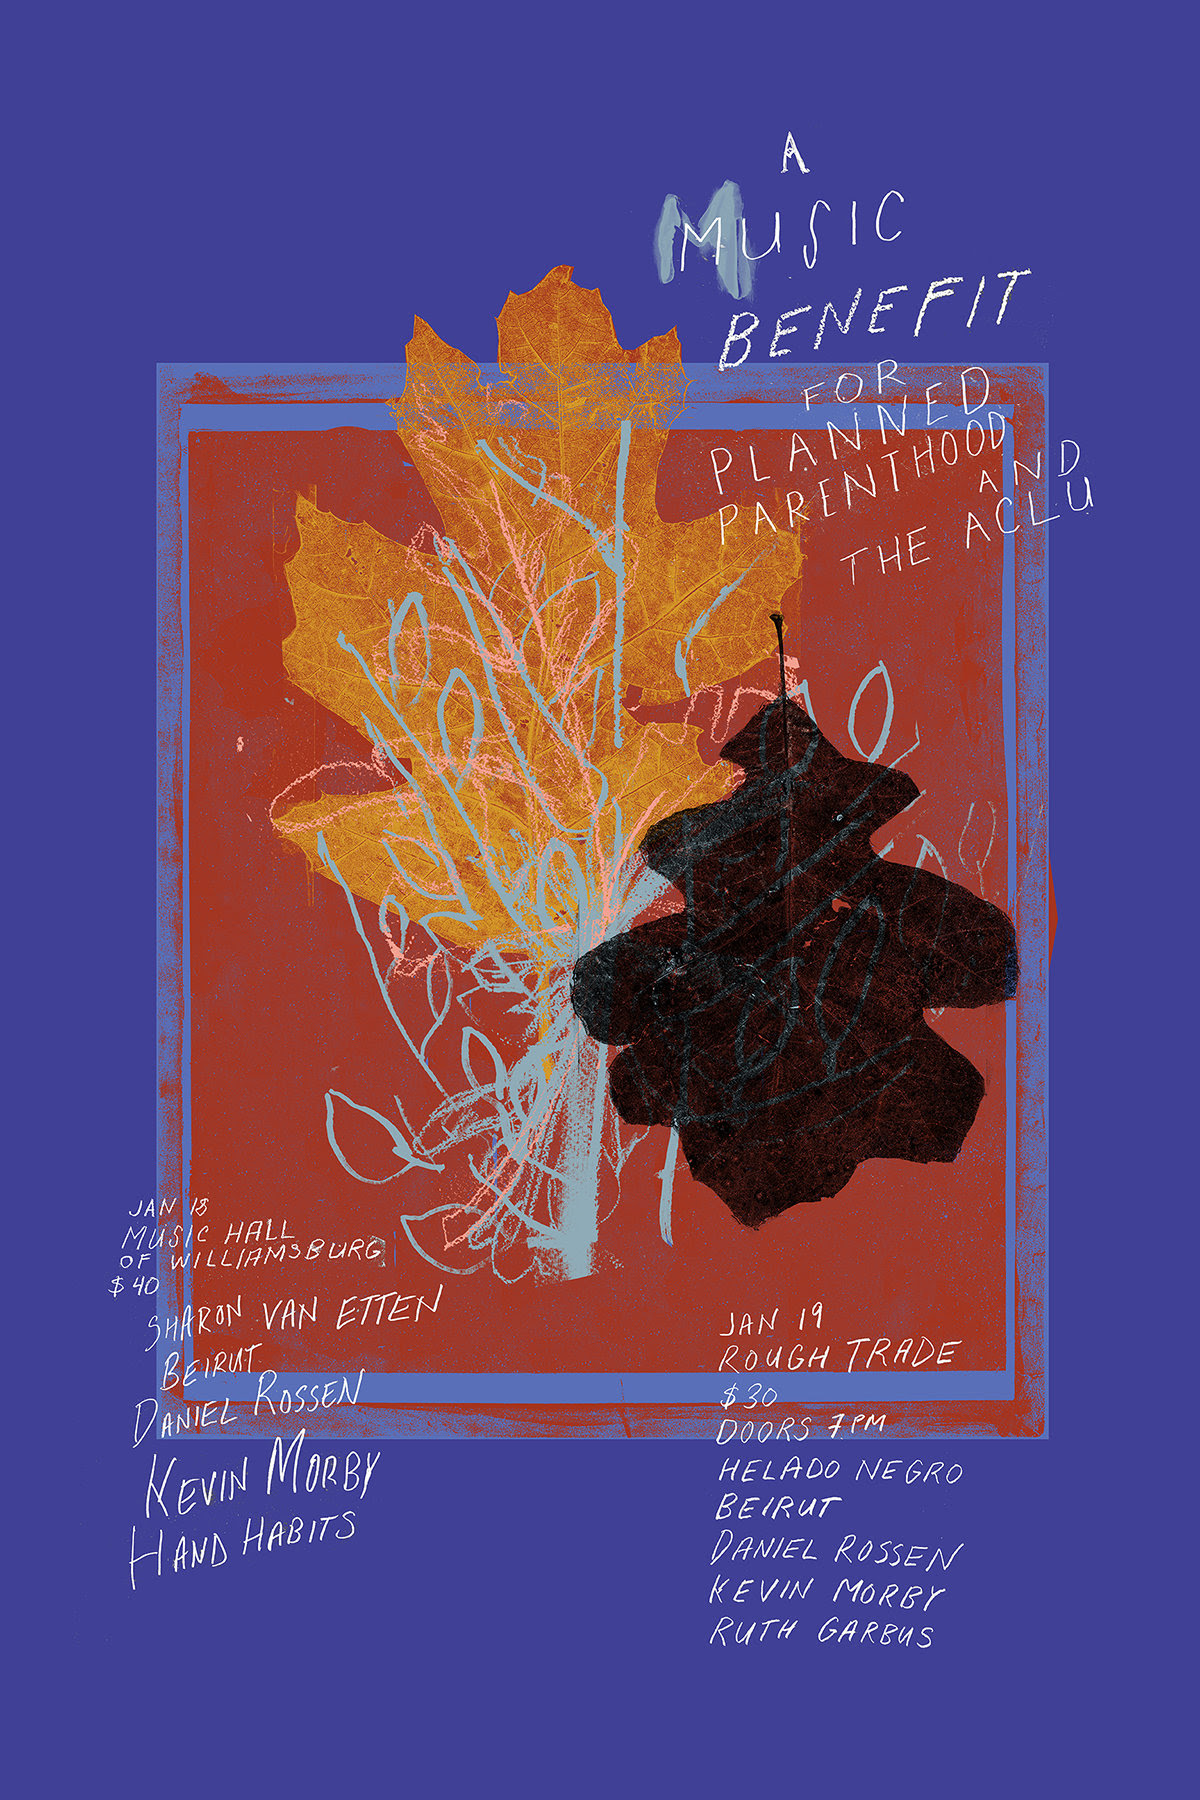 Sharon Van Etten, Beirut, Helado Negro, Kevin Morby And More Announce A Music Benefit For Planned Parenthood & The ACLU In New York City.